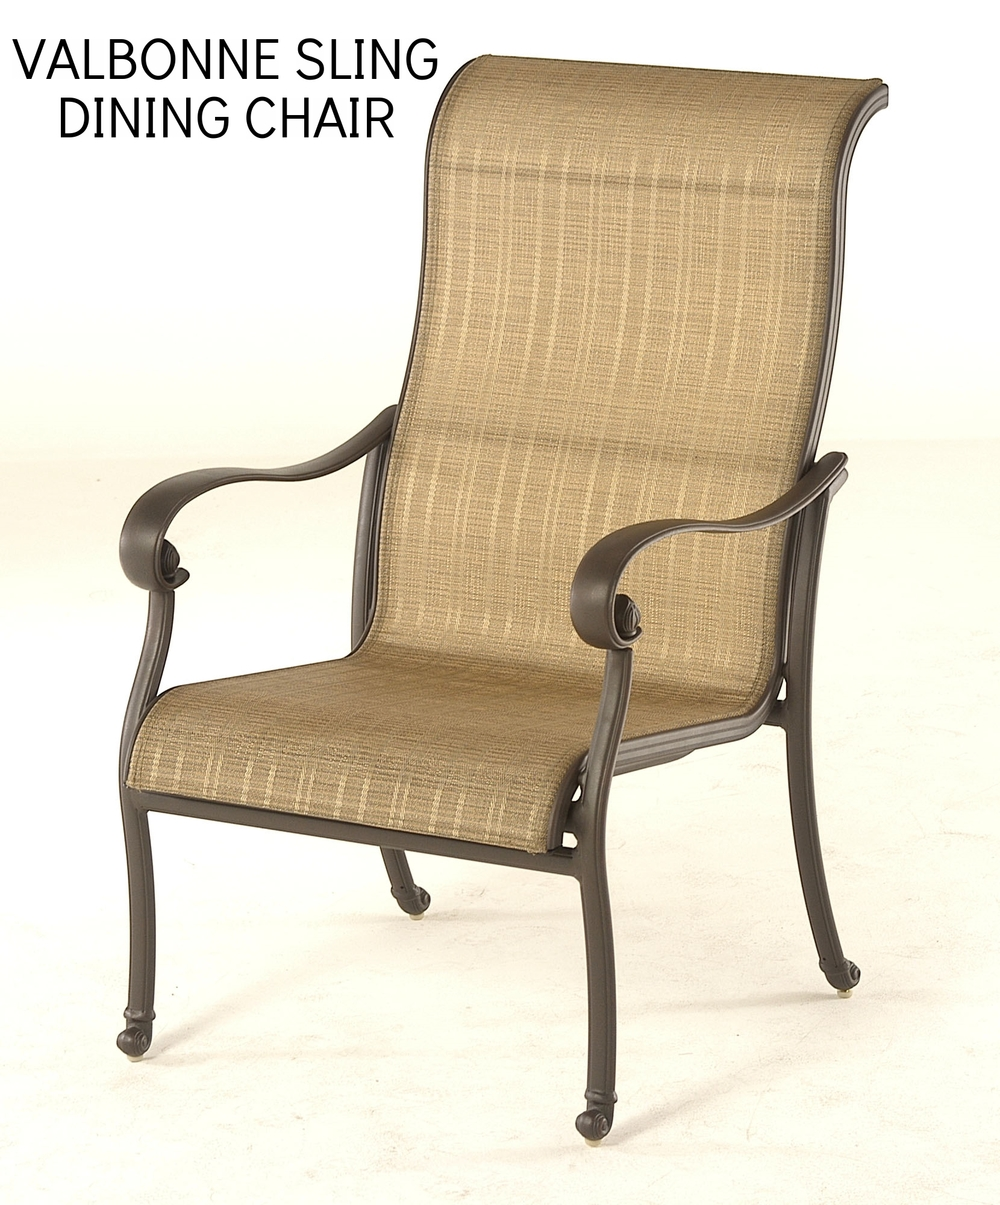 Valbonne Sling Dining Chair.JPG